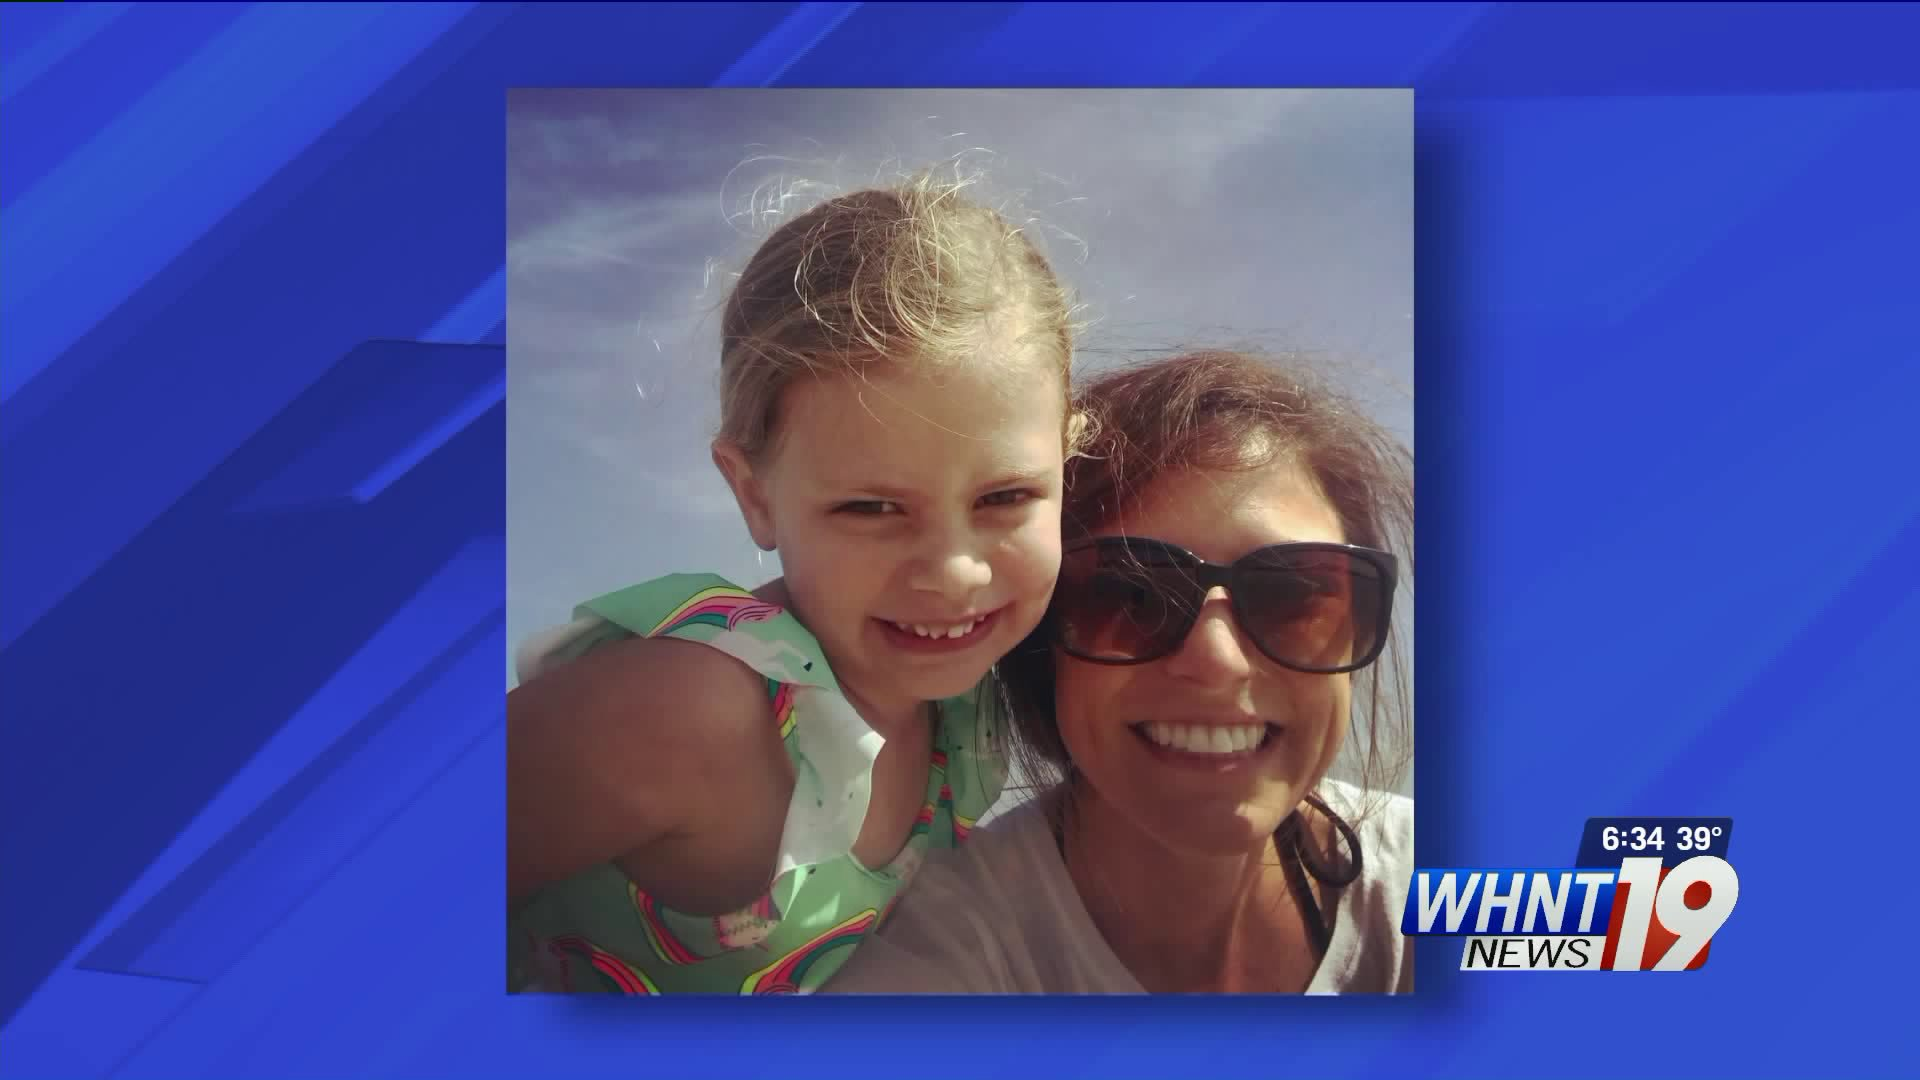 Lauren Cowart and her 5-year-old daughter Blakely lost their lives during a crash on Shoal Creek last June.